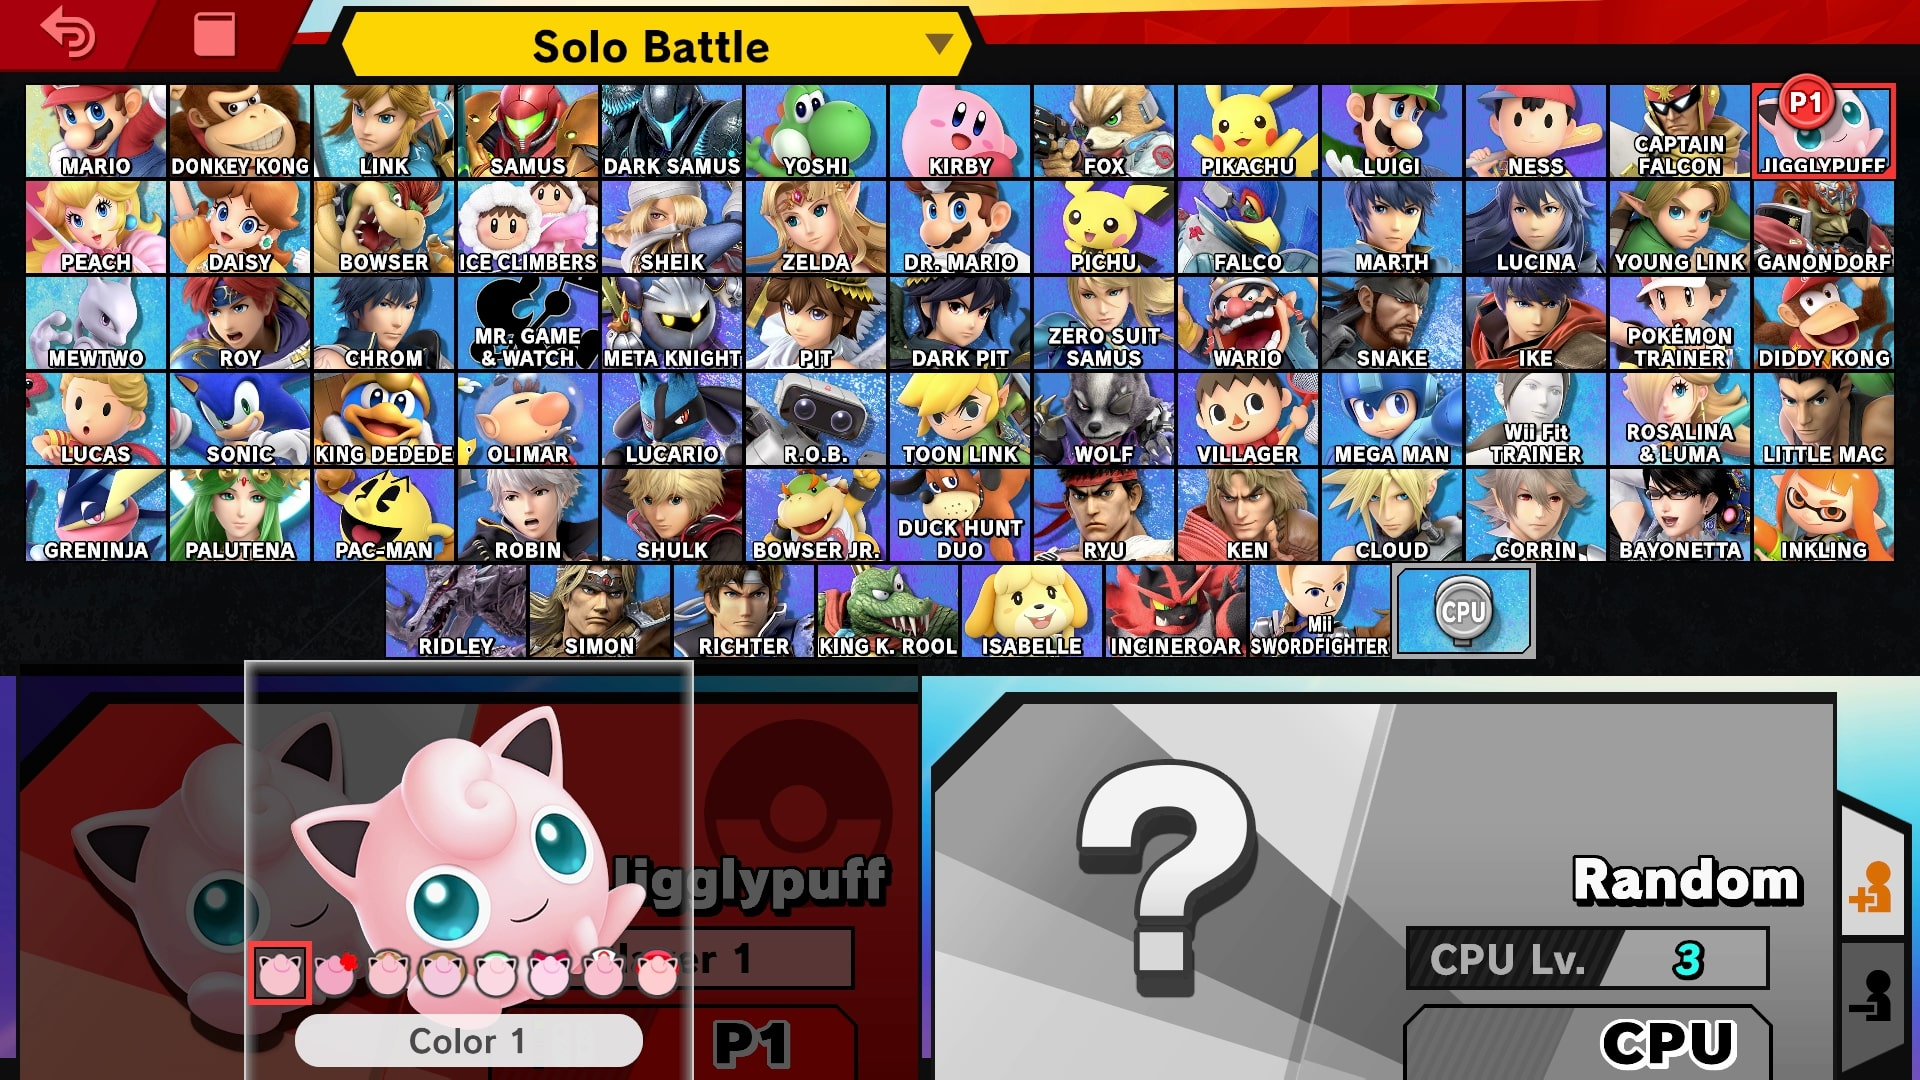 Jigglypuff Super Smash Bros Ultimate Guide Unlock Moves Changes